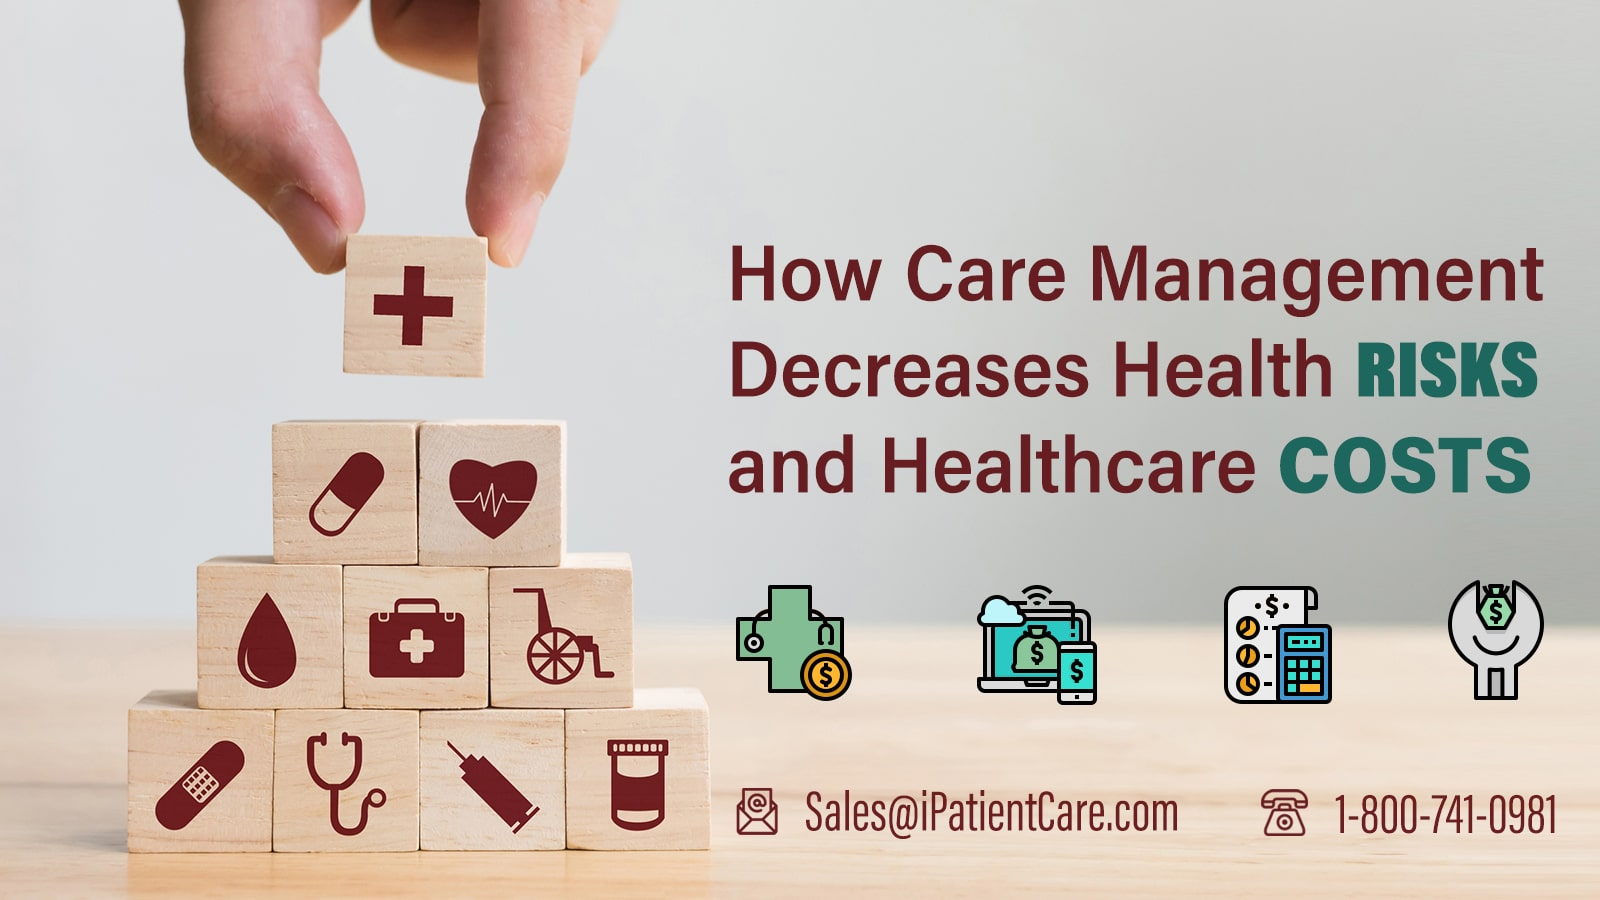 How Care Management Decreases Health Risks and Healthcare Costs